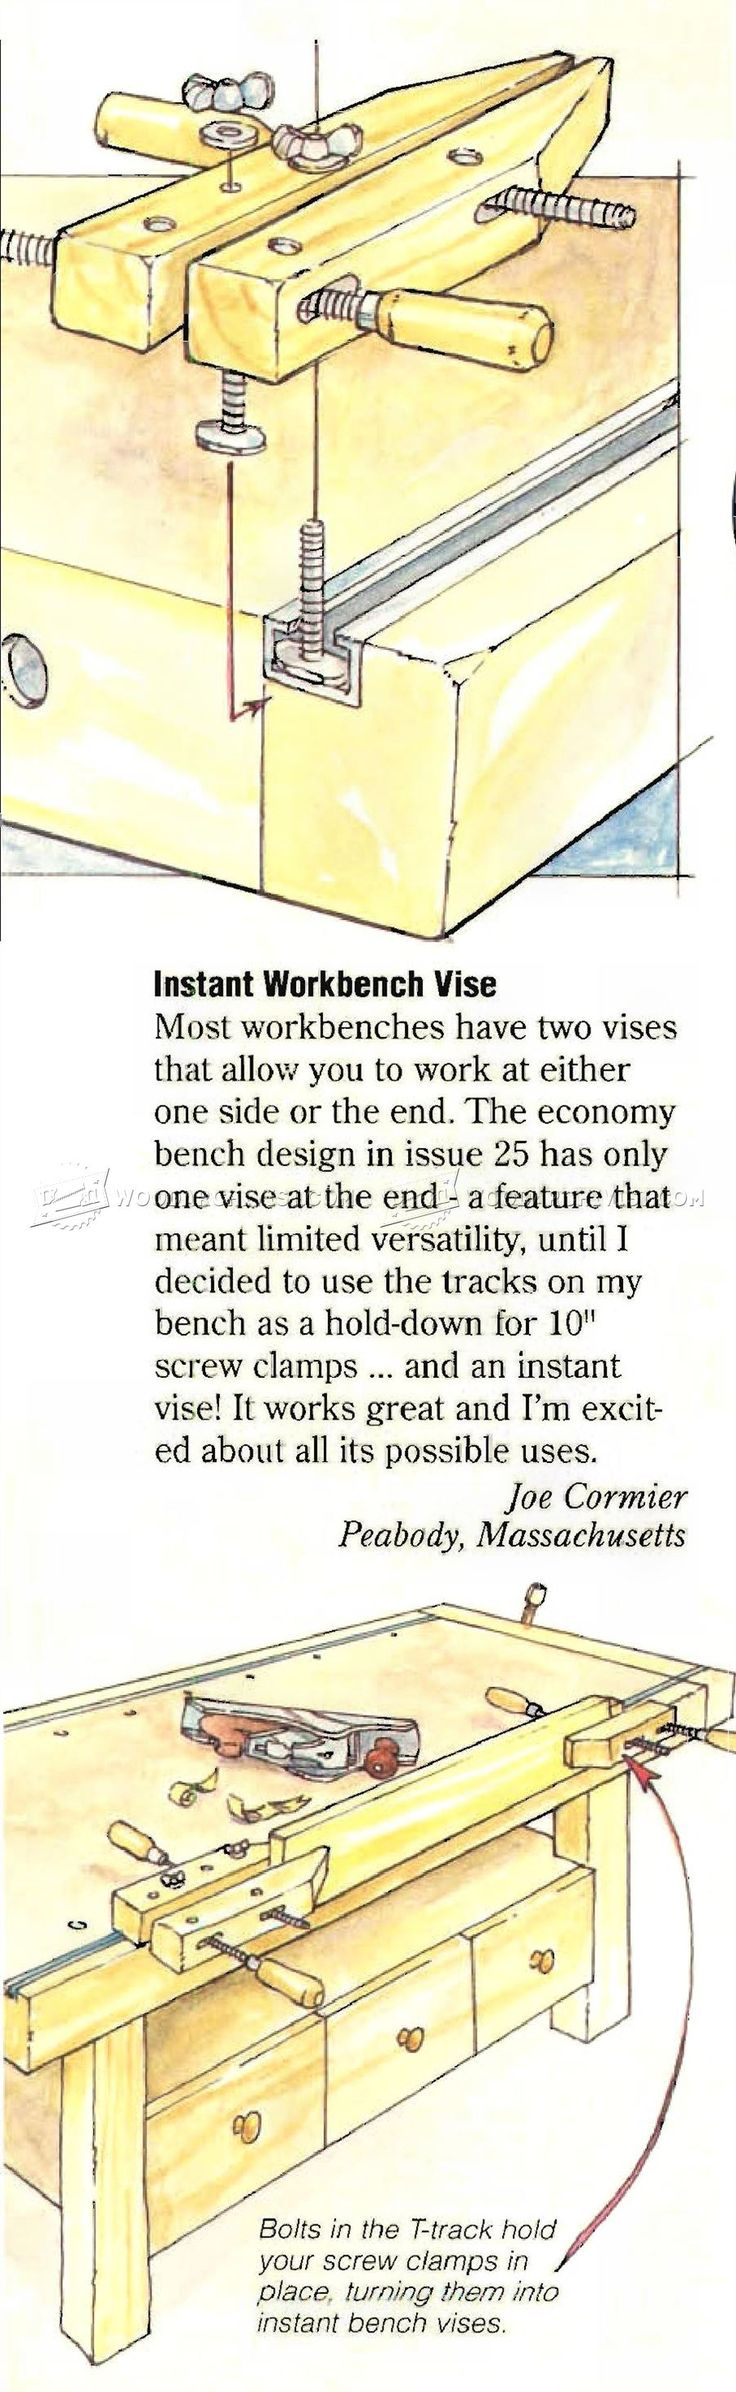 Instant Workbench Vise - Workshop Solutions Projects, Tips and Tricks   WoodArchivist.com